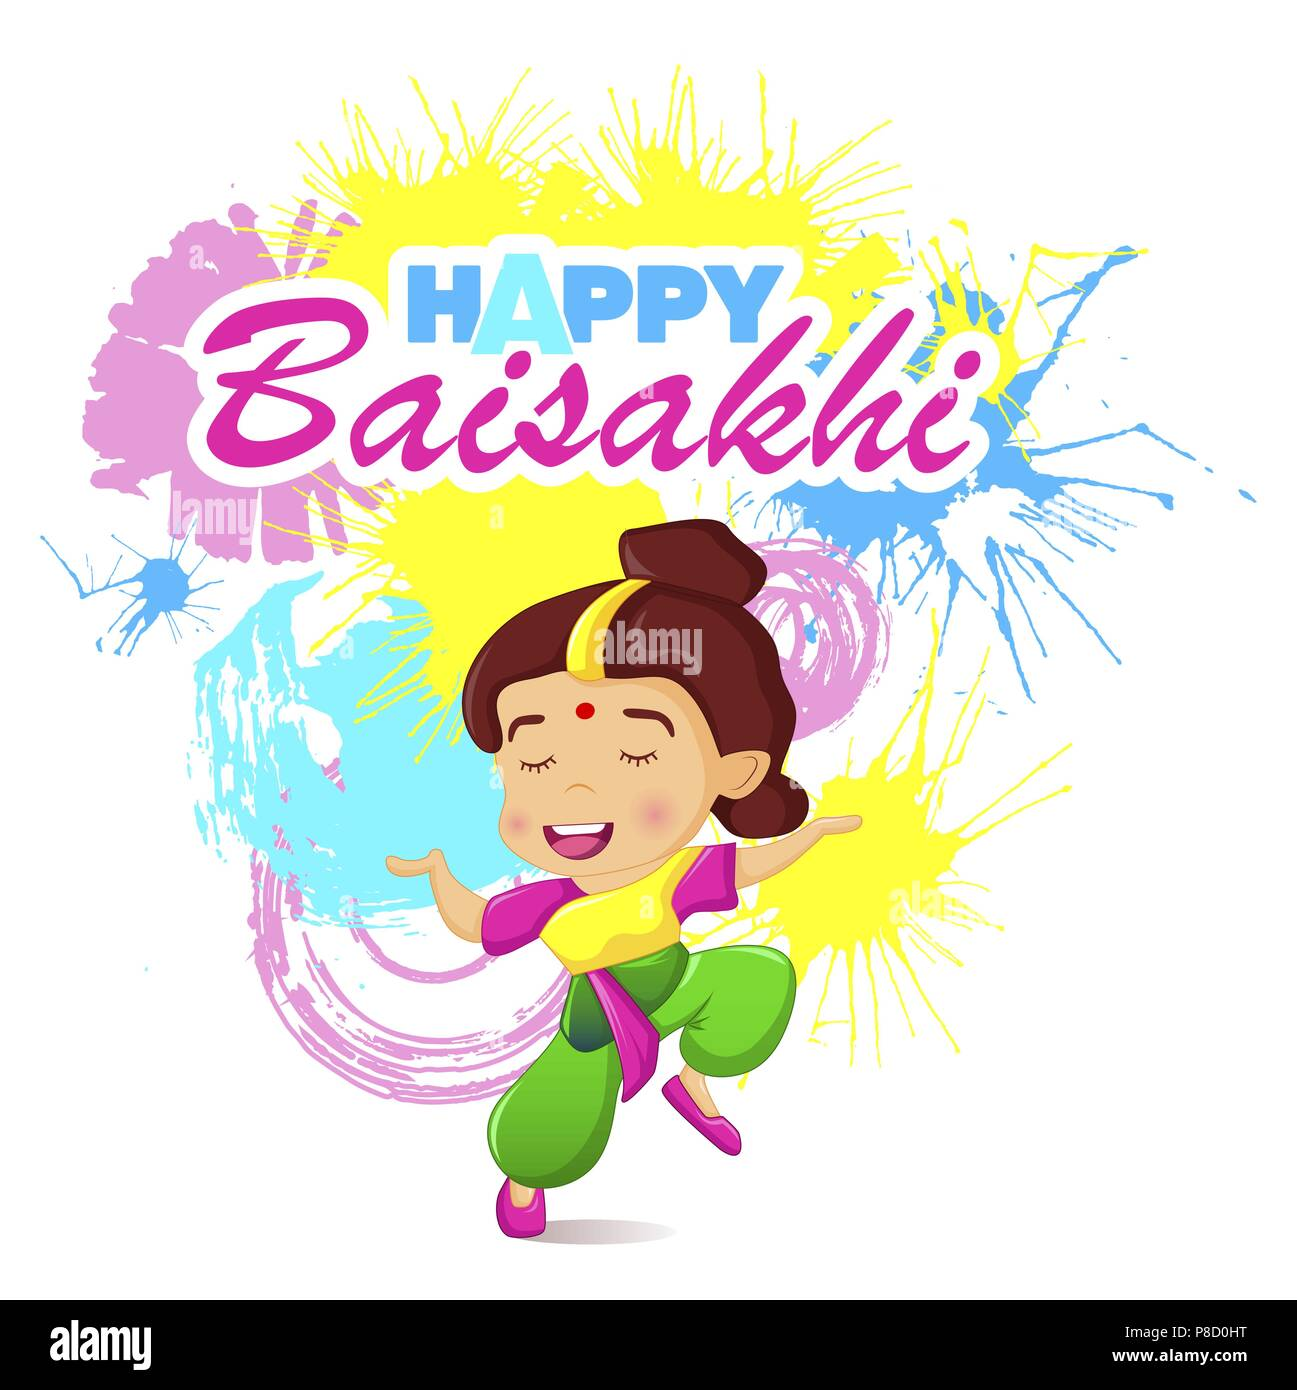 Happy baisakhi woman concept banner, cartoon style - Stock Vector